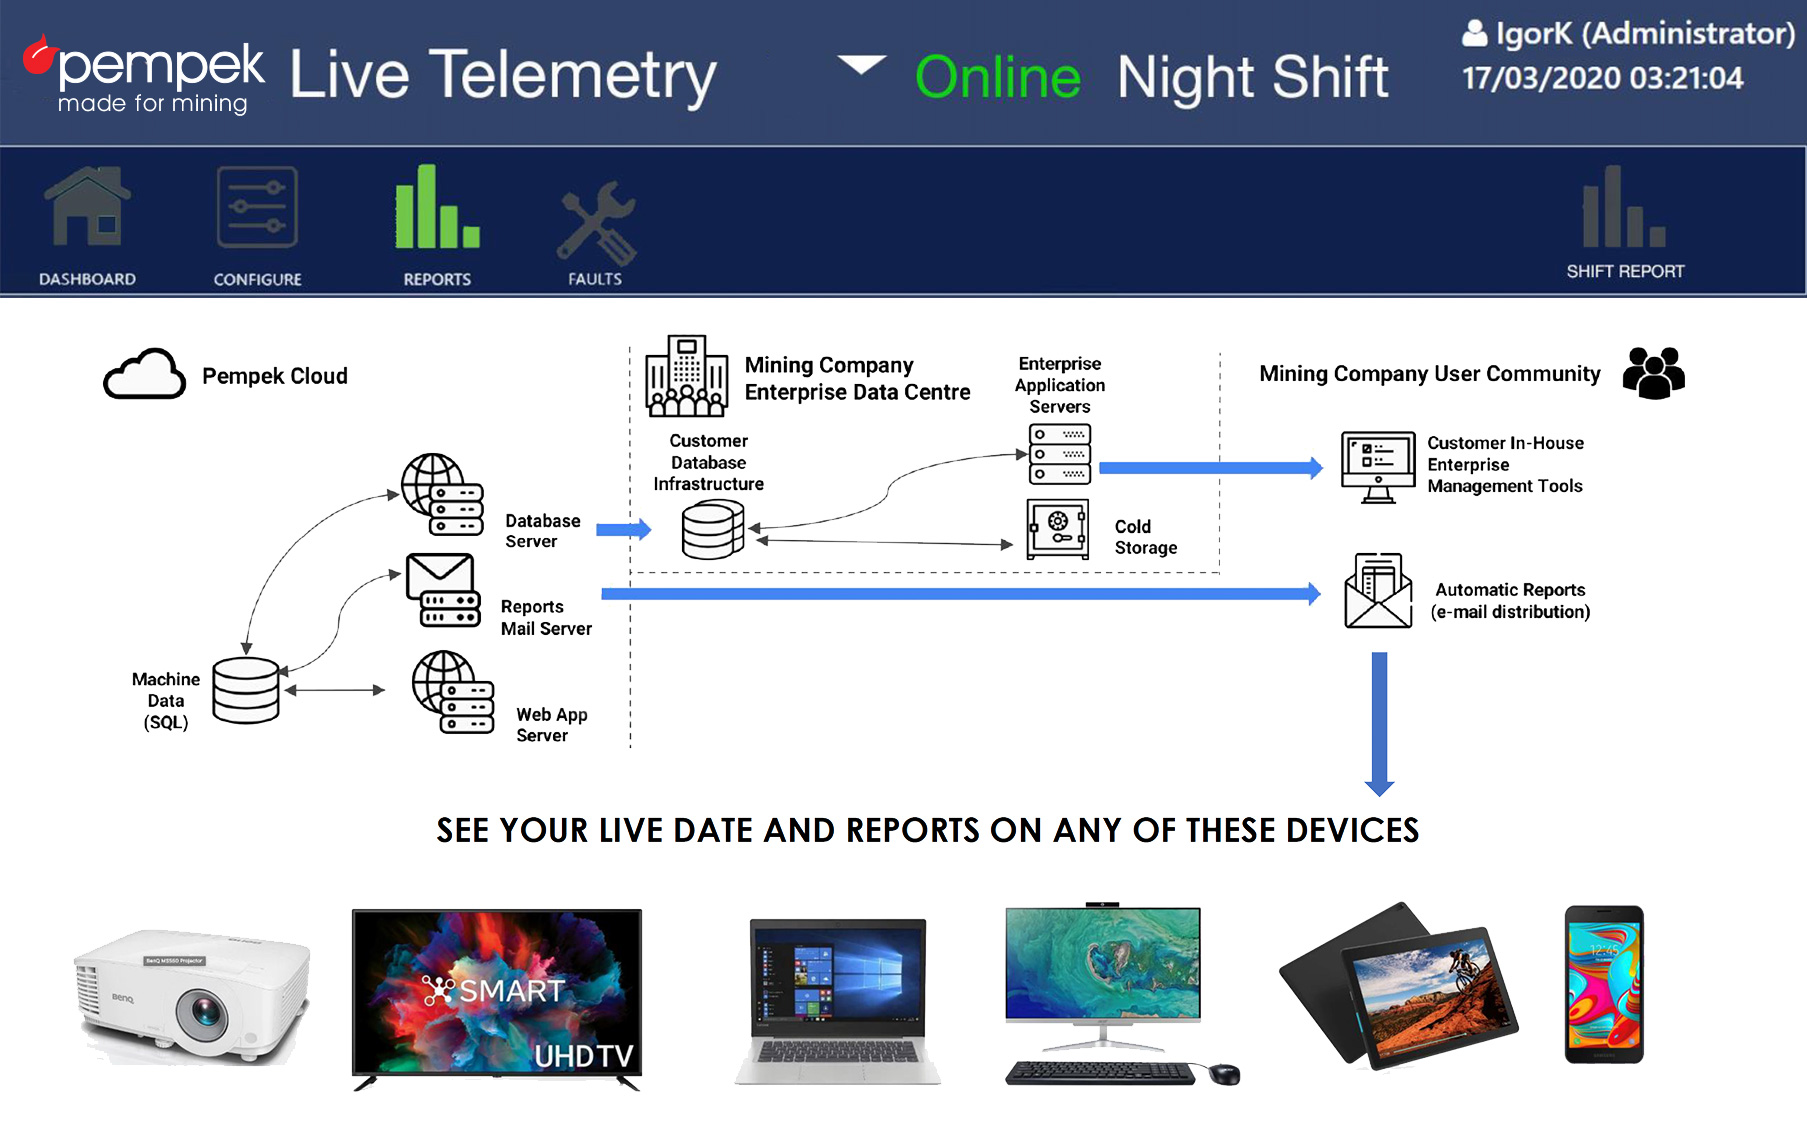 telemetry-live-on-multiple-device